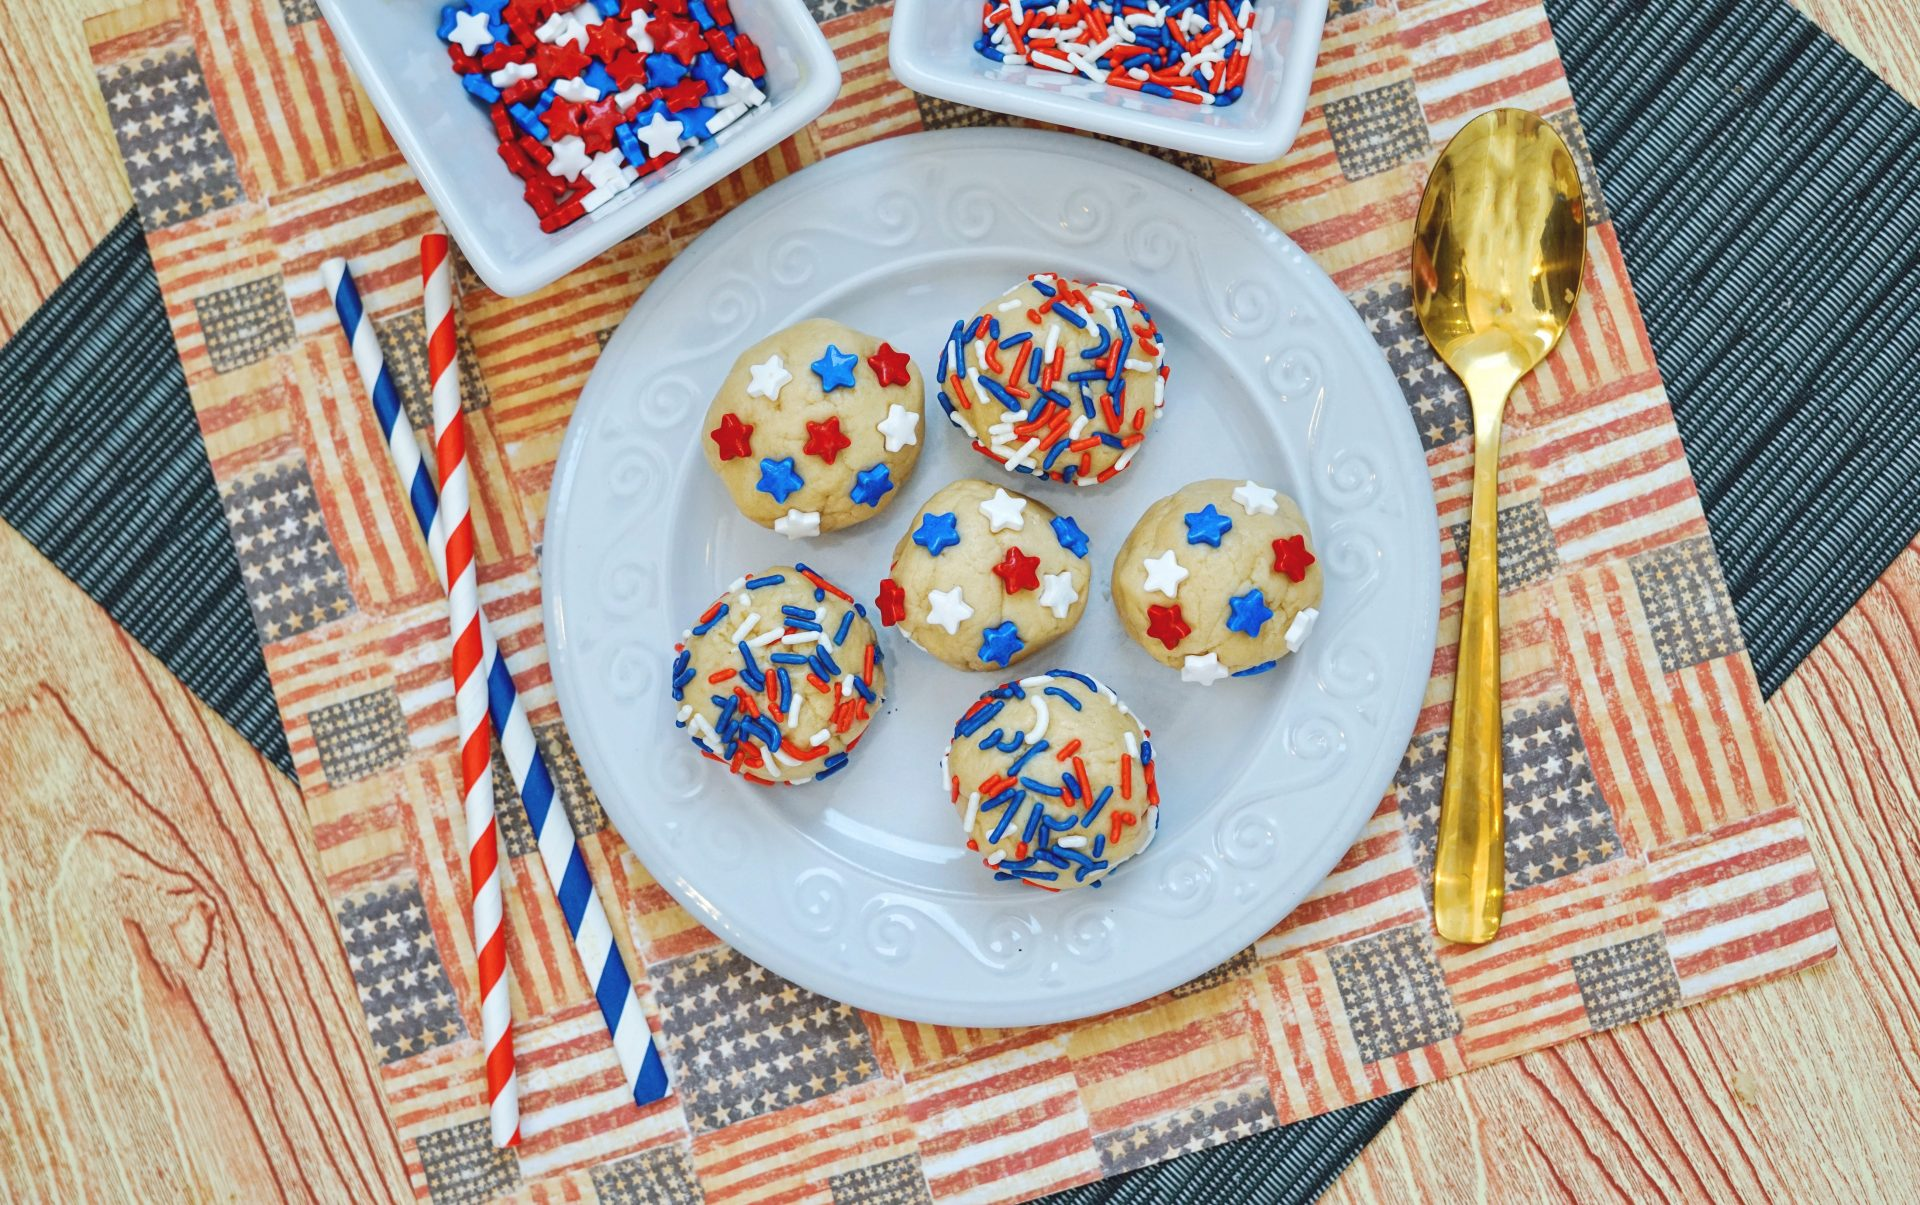 This Patriotic Edible Sugar Cookie Dough  is a super easy recipe to whip up and snack on anytime - not just for the 4th of July.